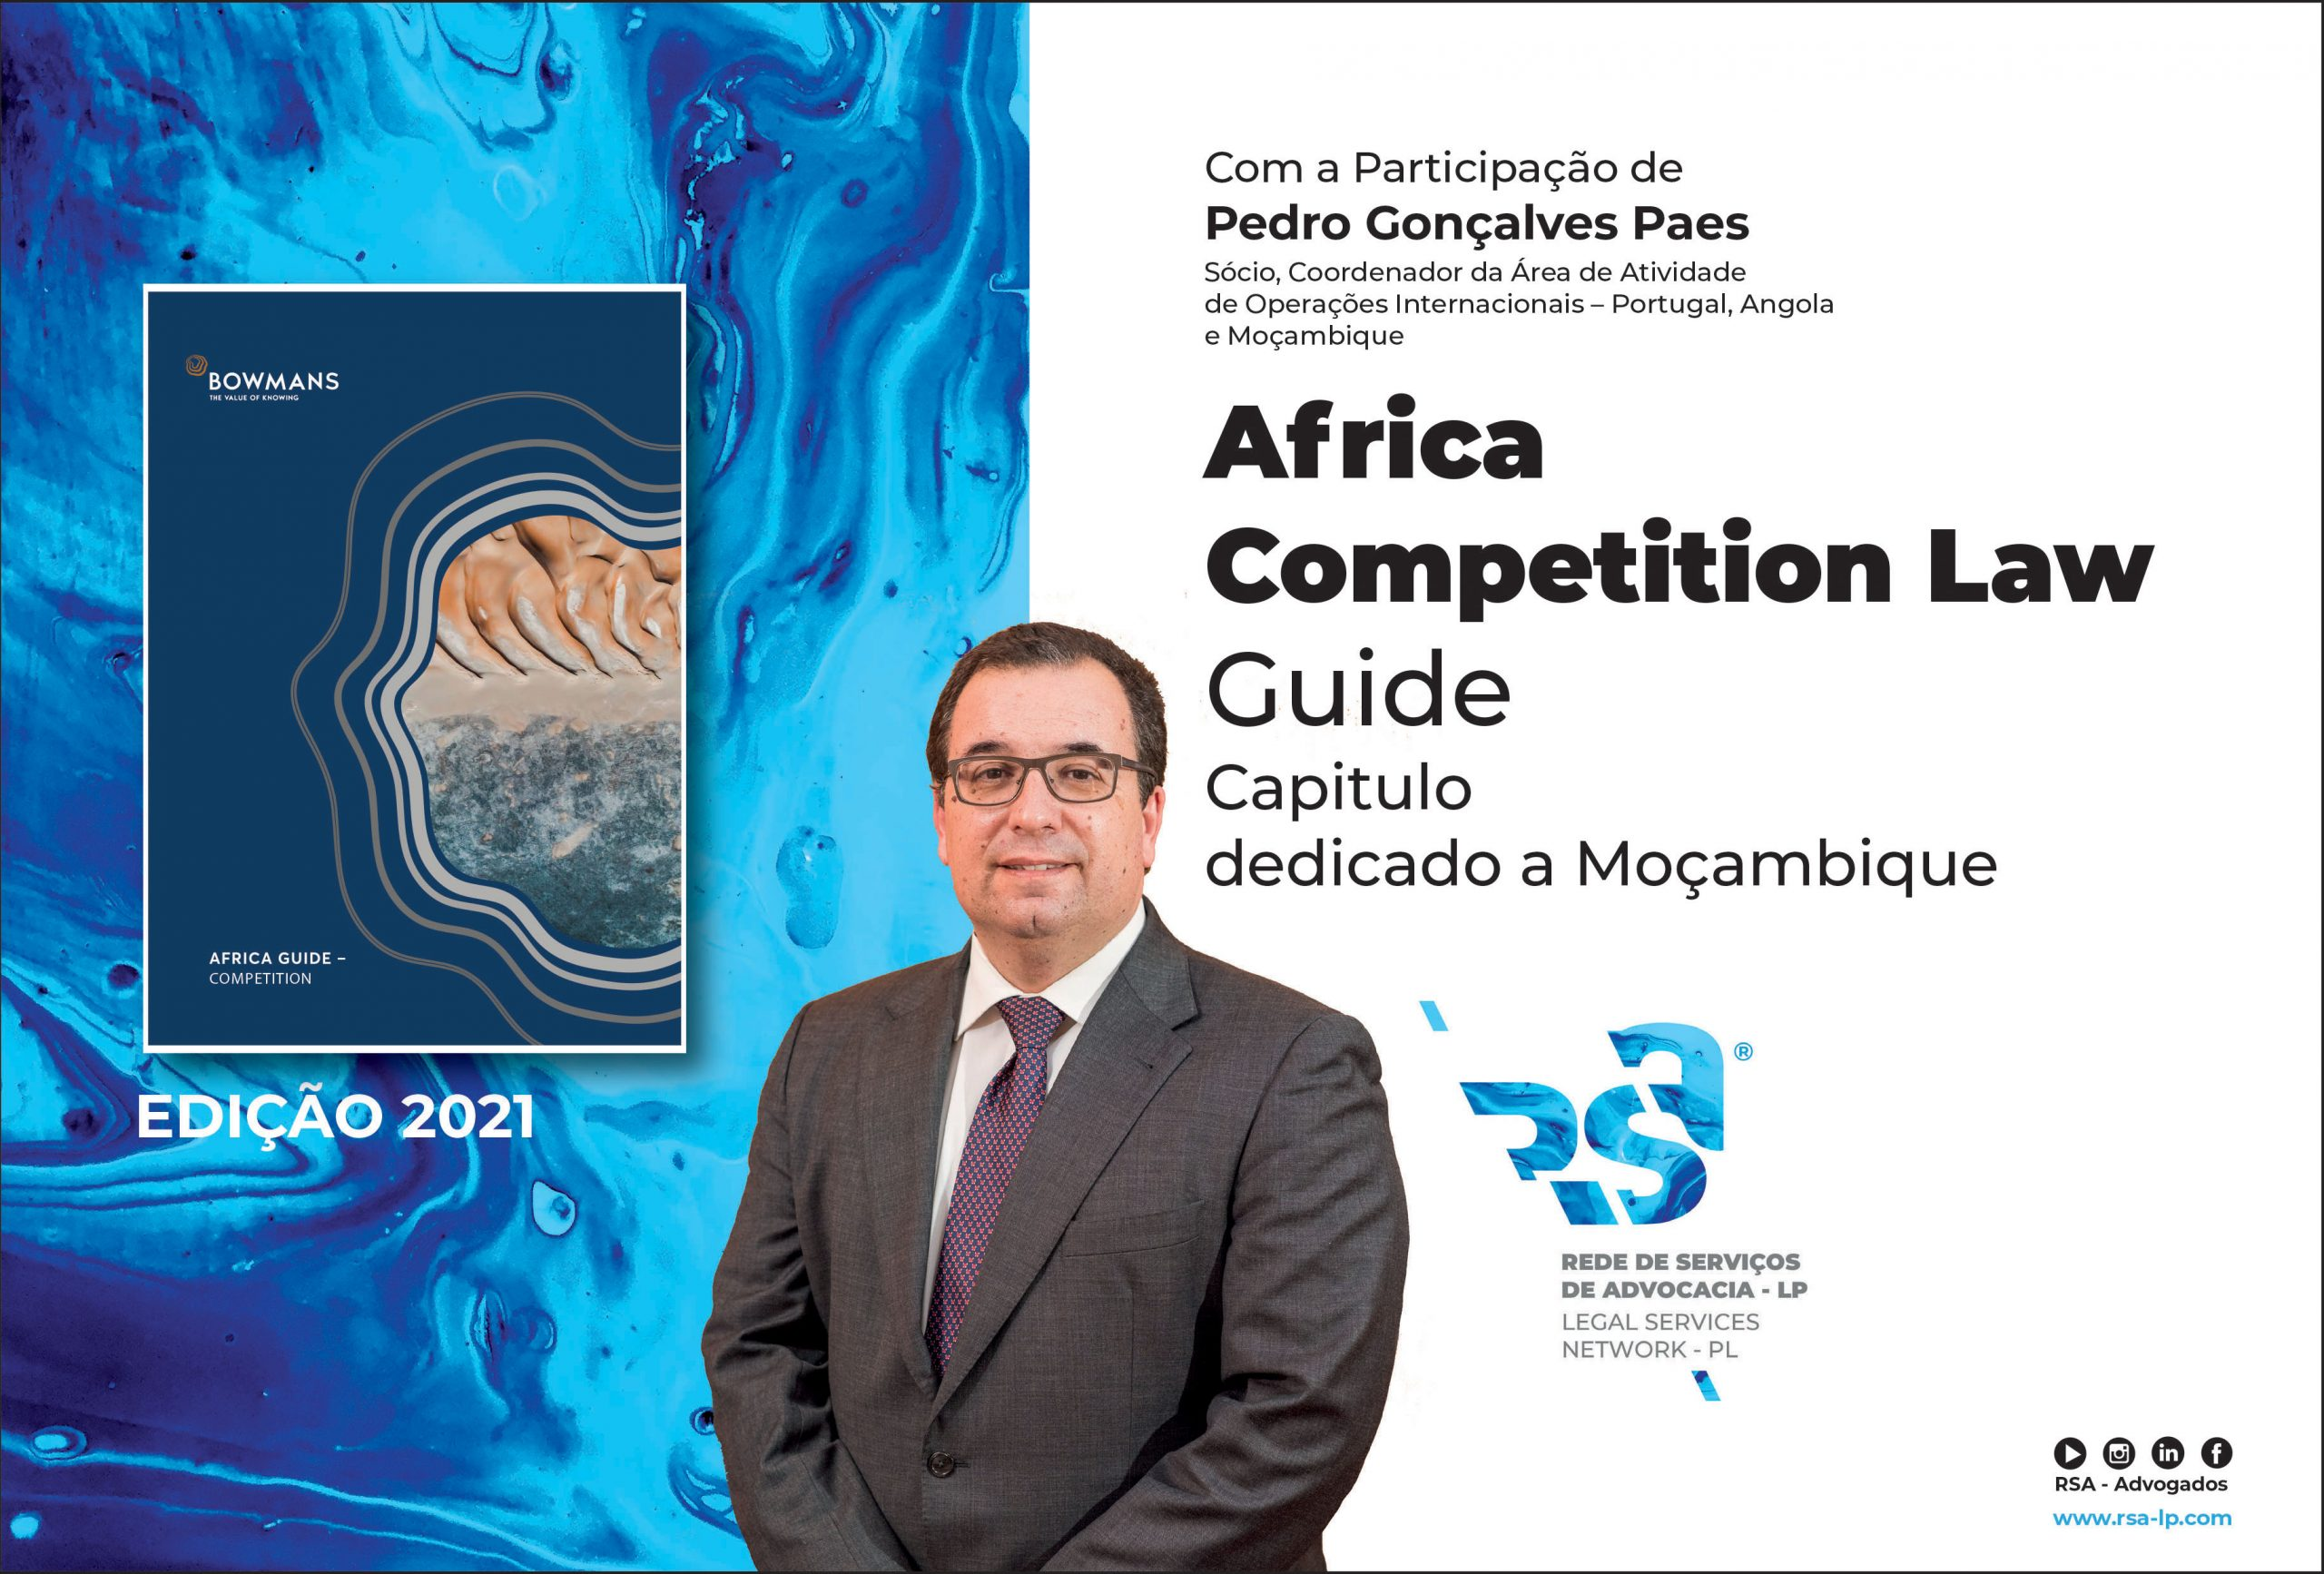 Africa Guide - Competition - Moçambique